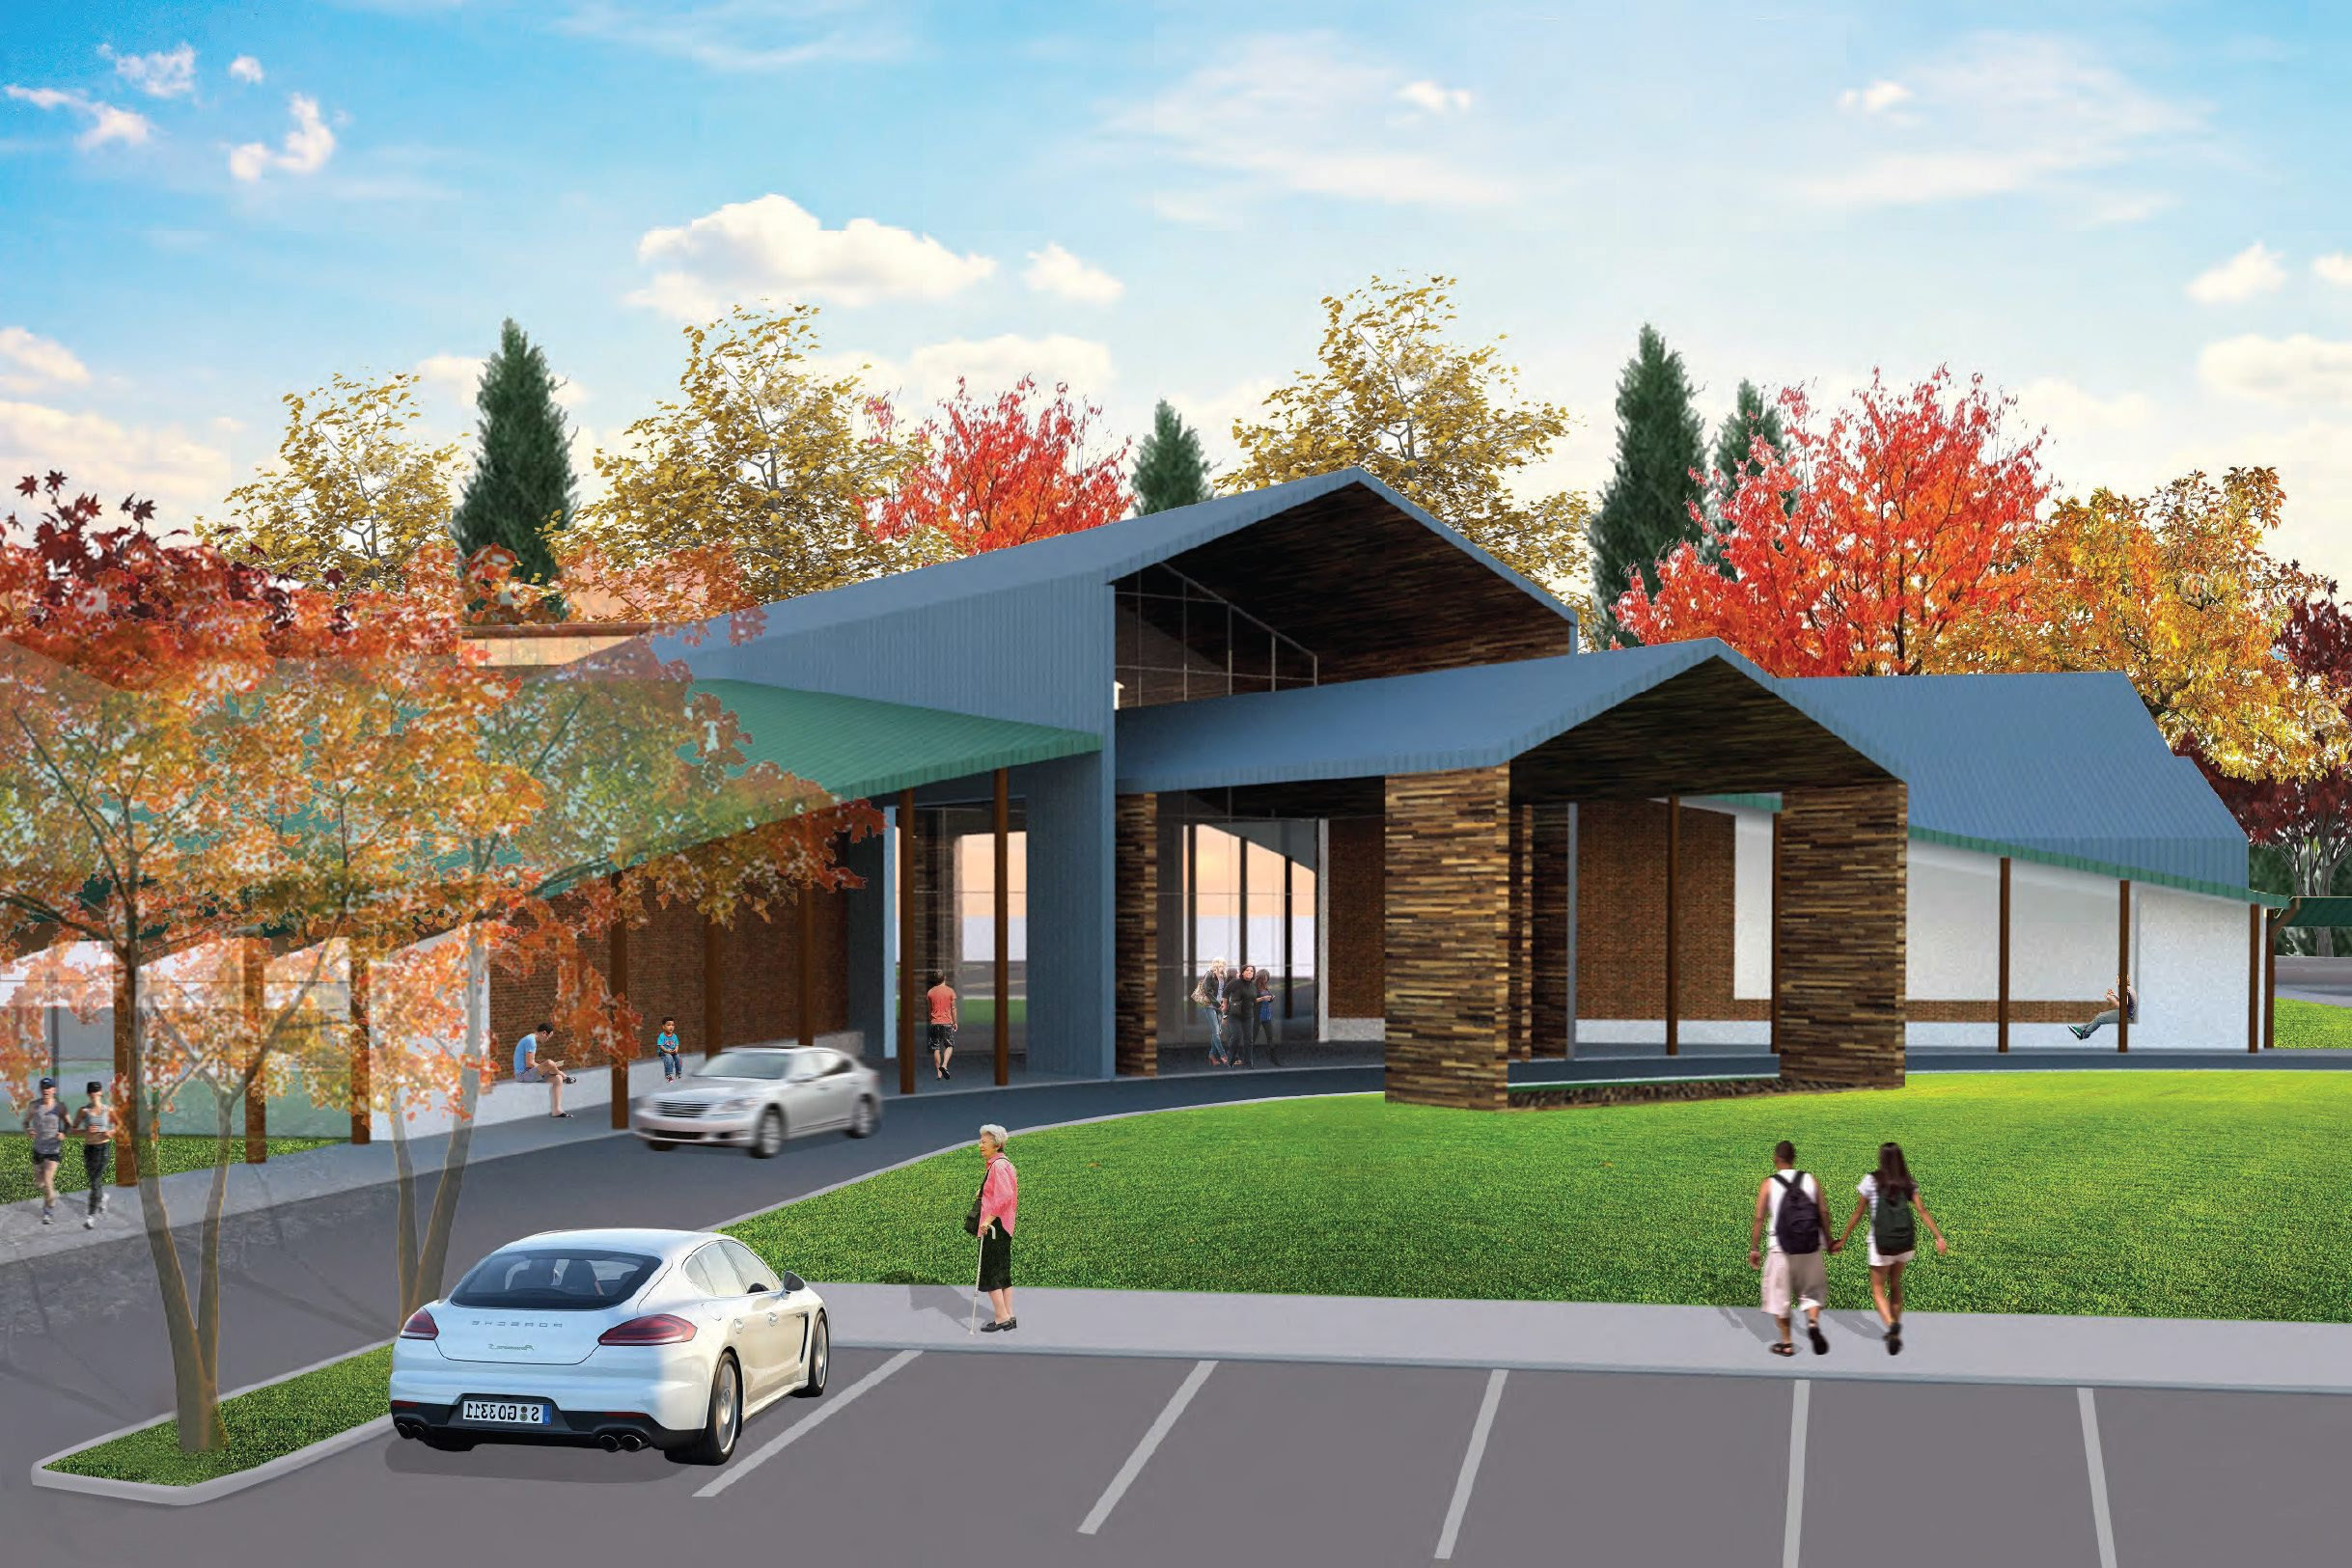 An architect's rendering of the proposed Orchard Park Community Activities Center, which would combine the senior center and Recreation Department under one roof. The basic version has a $20 million price tag; another $10 million would add amenities like a pool and splash pad.